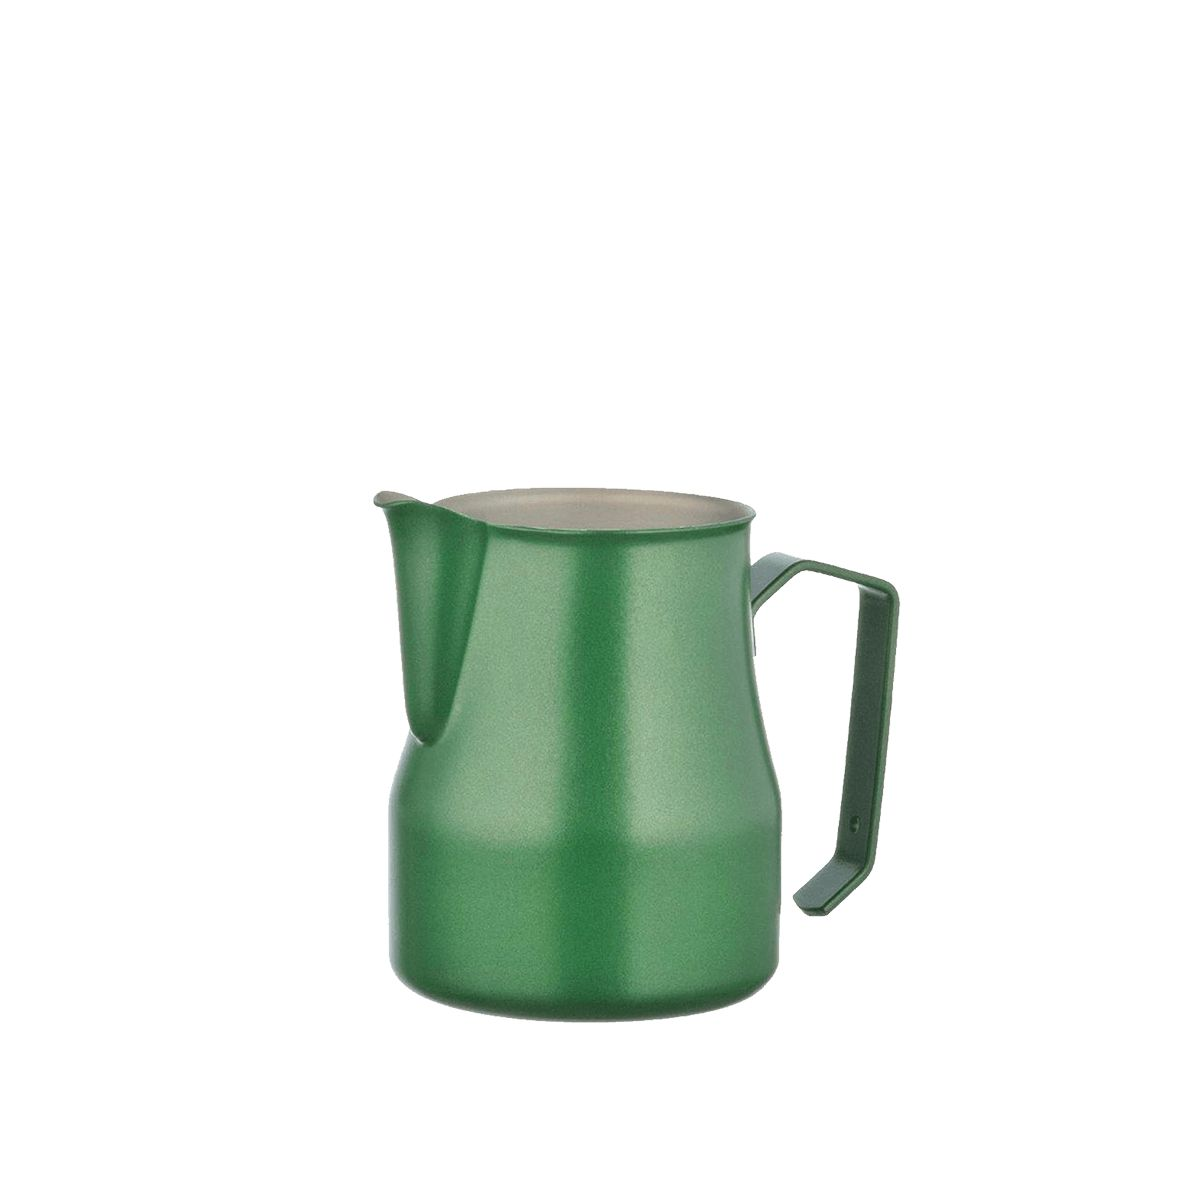 Teflon milk pitcher - Motta - Green